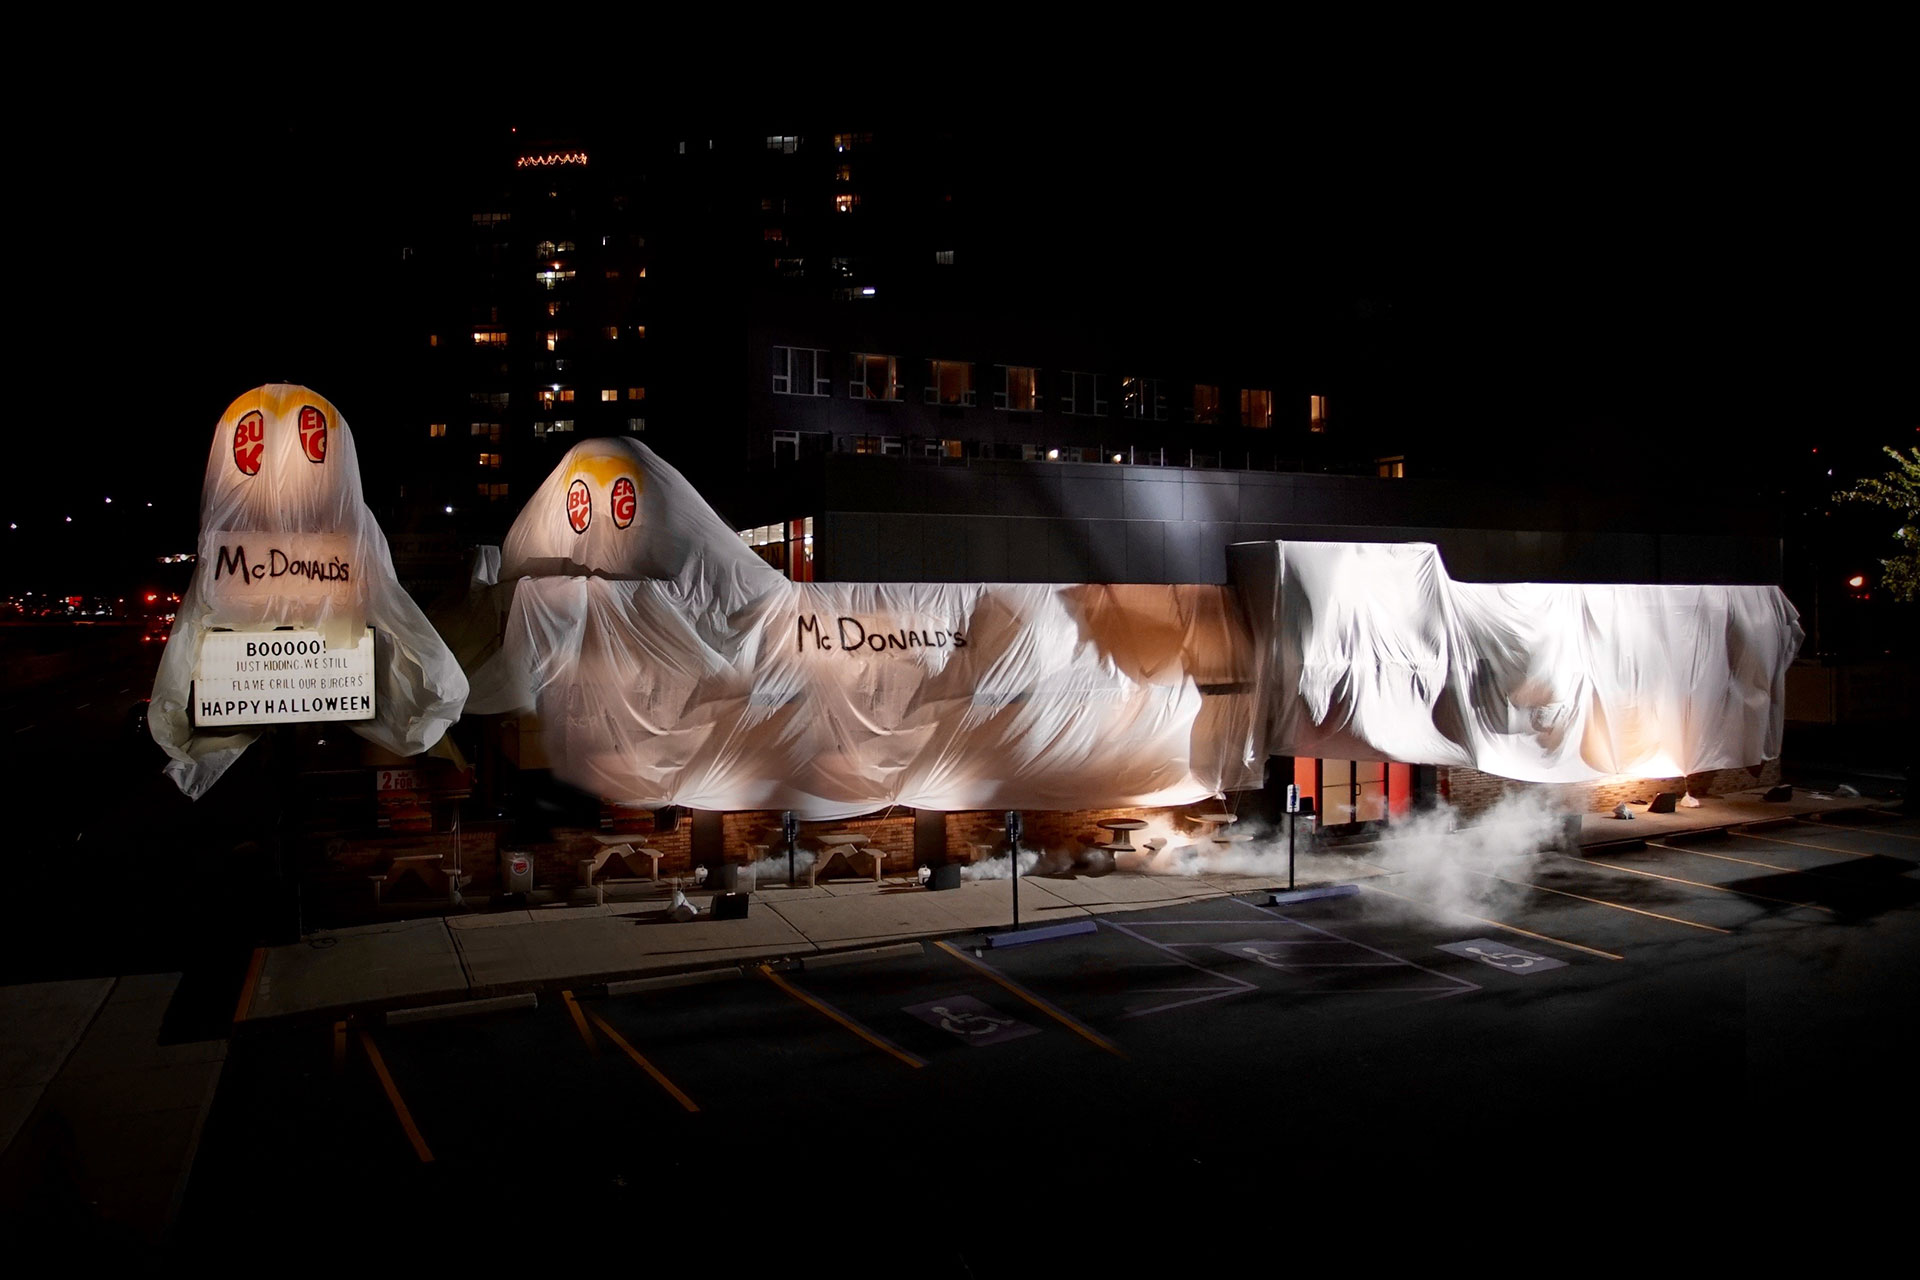 burger king dressed up as the ghost of mcdonald's in this scary good